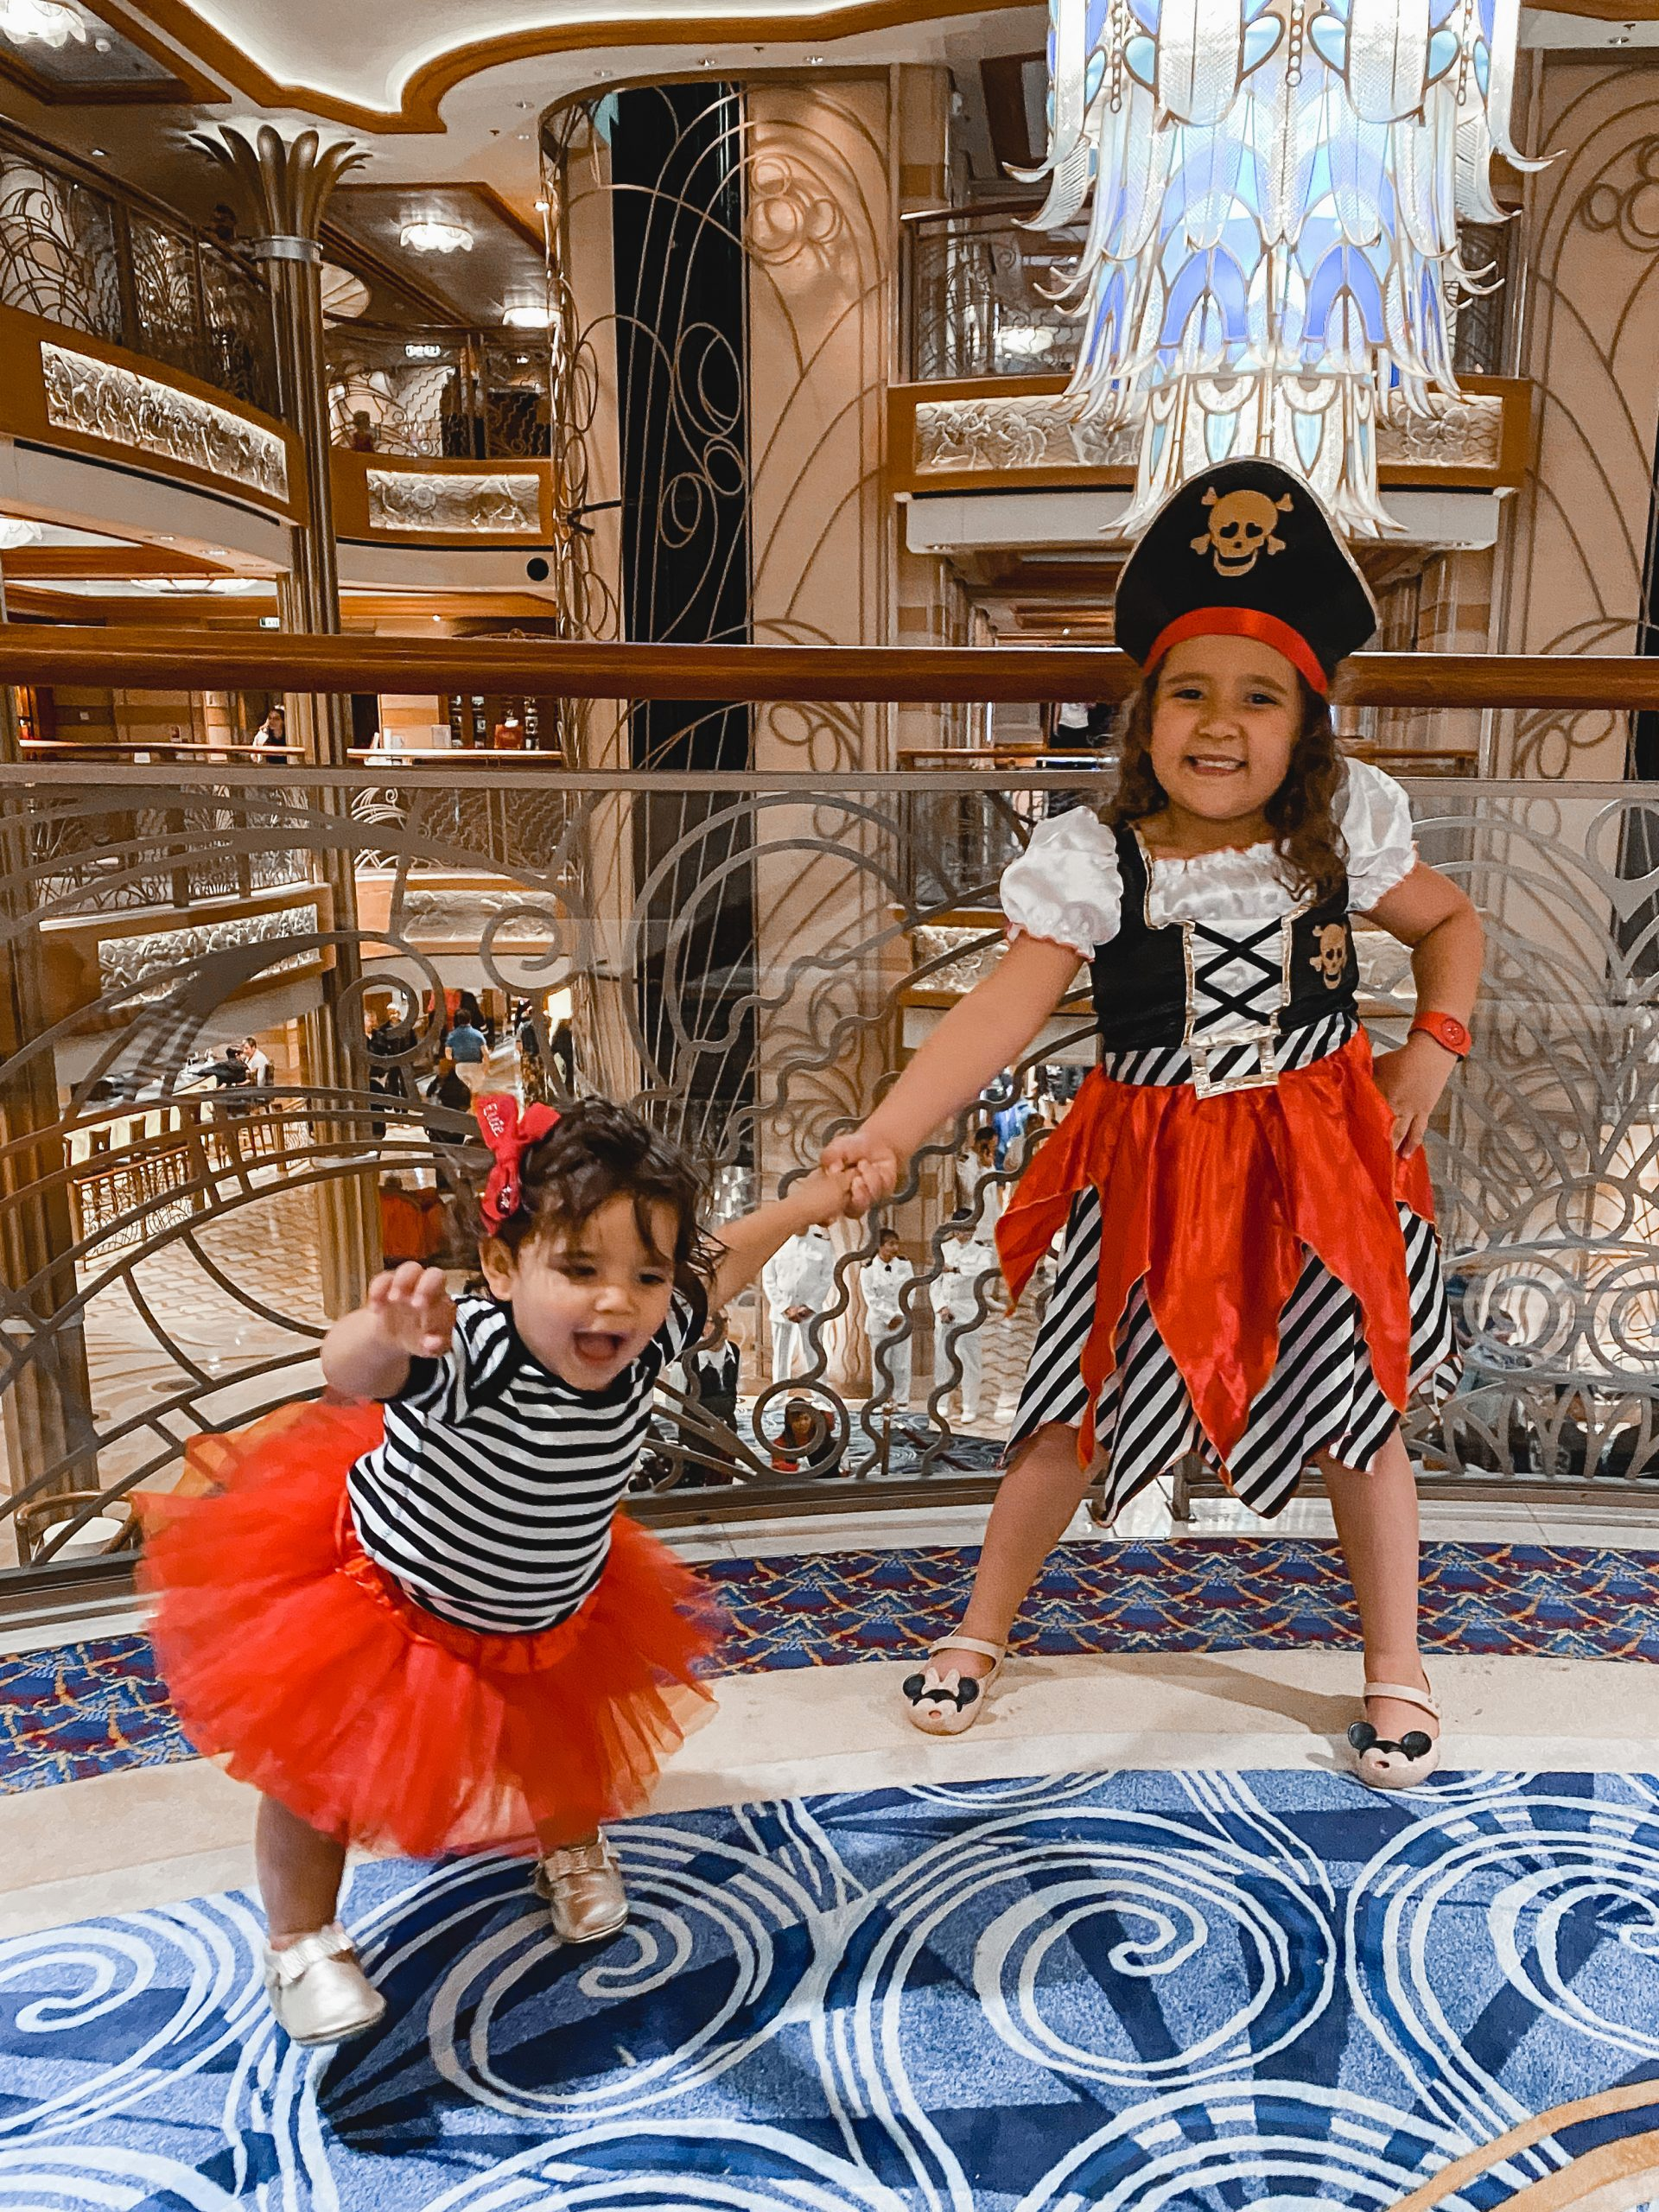 Virginia blogger, Lauren Dix, shares her Disney cruise outfits and 3 night Disney cruise packing list, including what to wear on Pirate Night!